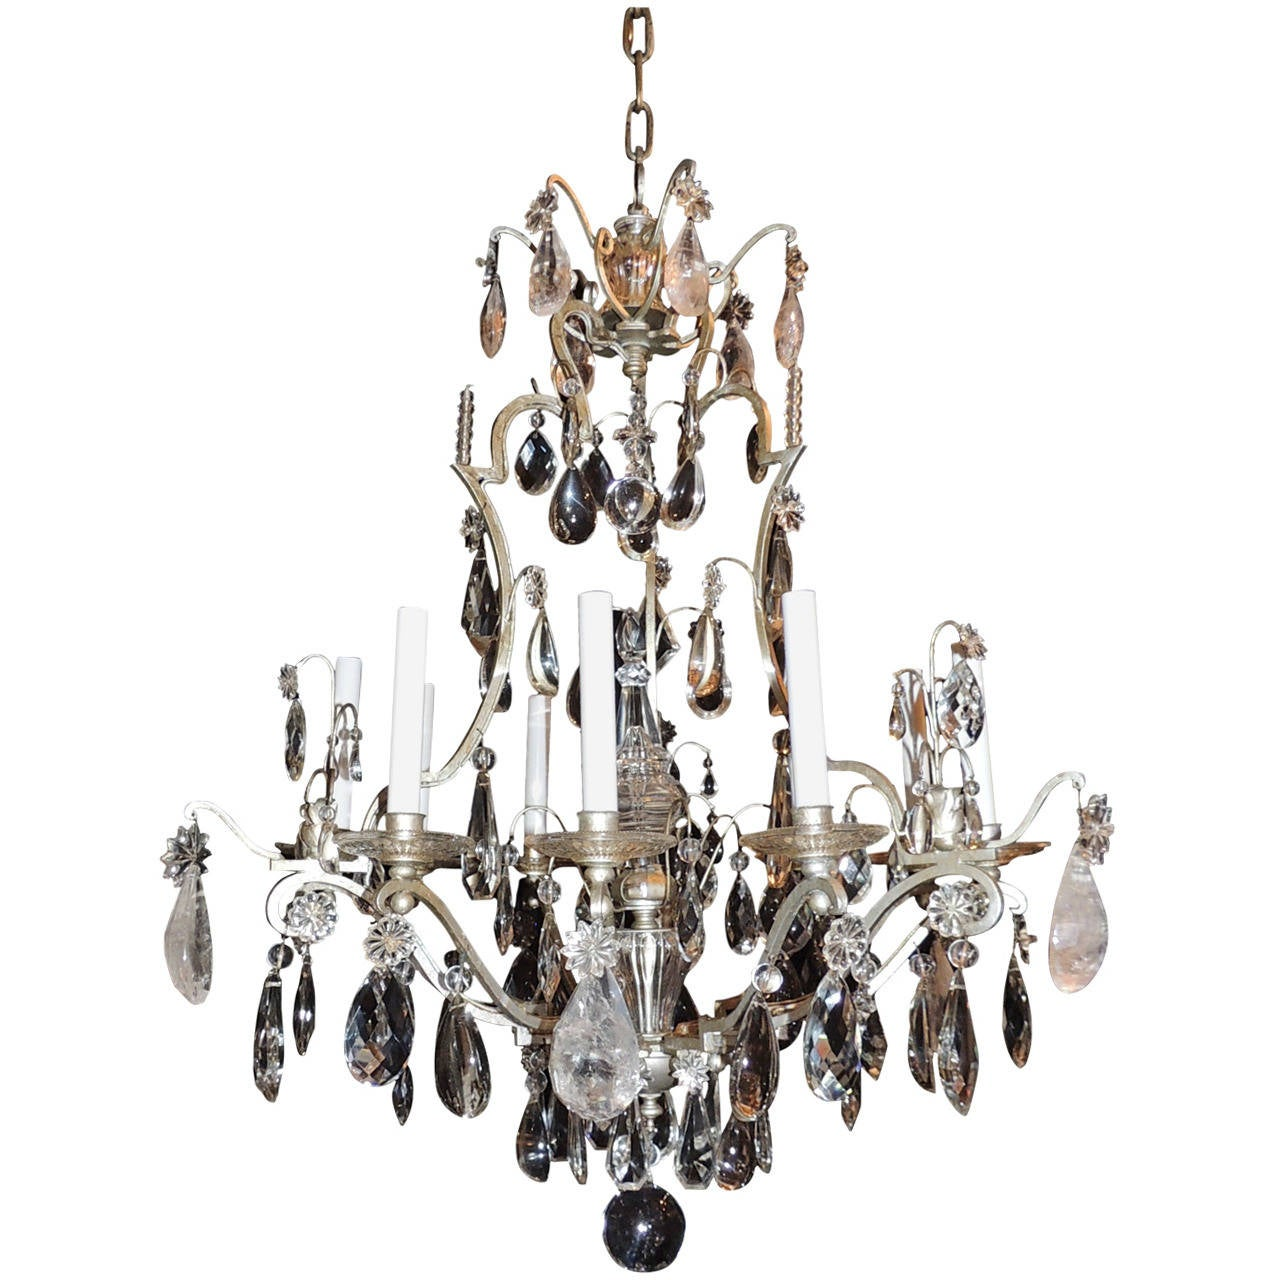 Original Bagues Nine-Light Silvered Chandelier with Rock and Faceted Crystals